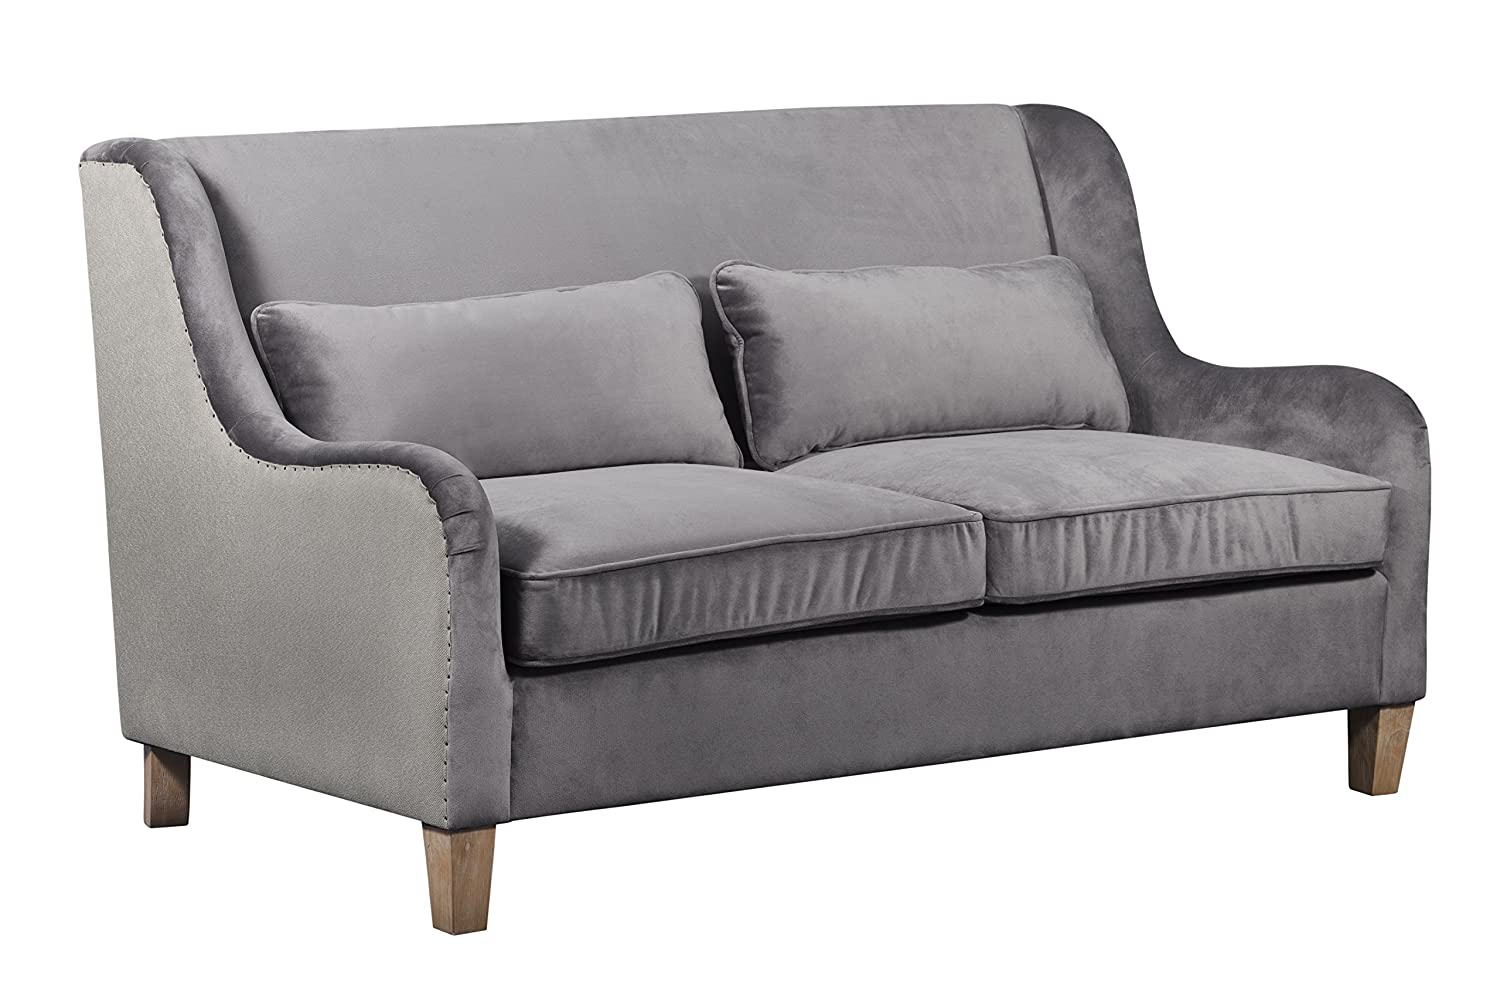 Elle Decor Wingback Two-Toned Sofa, Gray